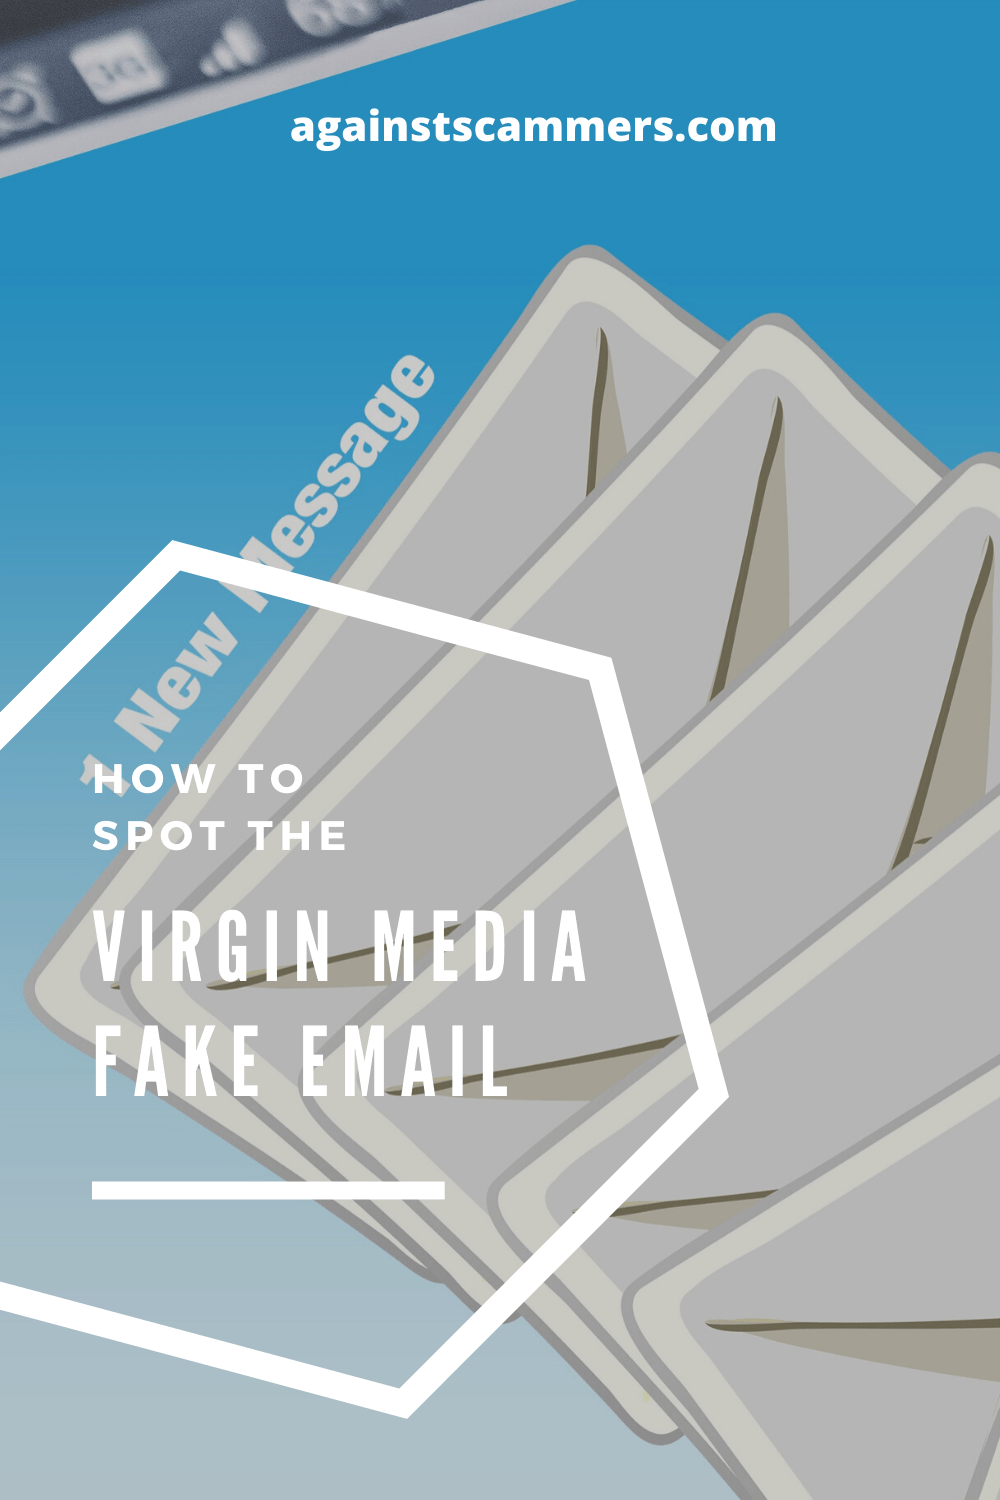 Virgin Media Fake Email How To Spot This Scam